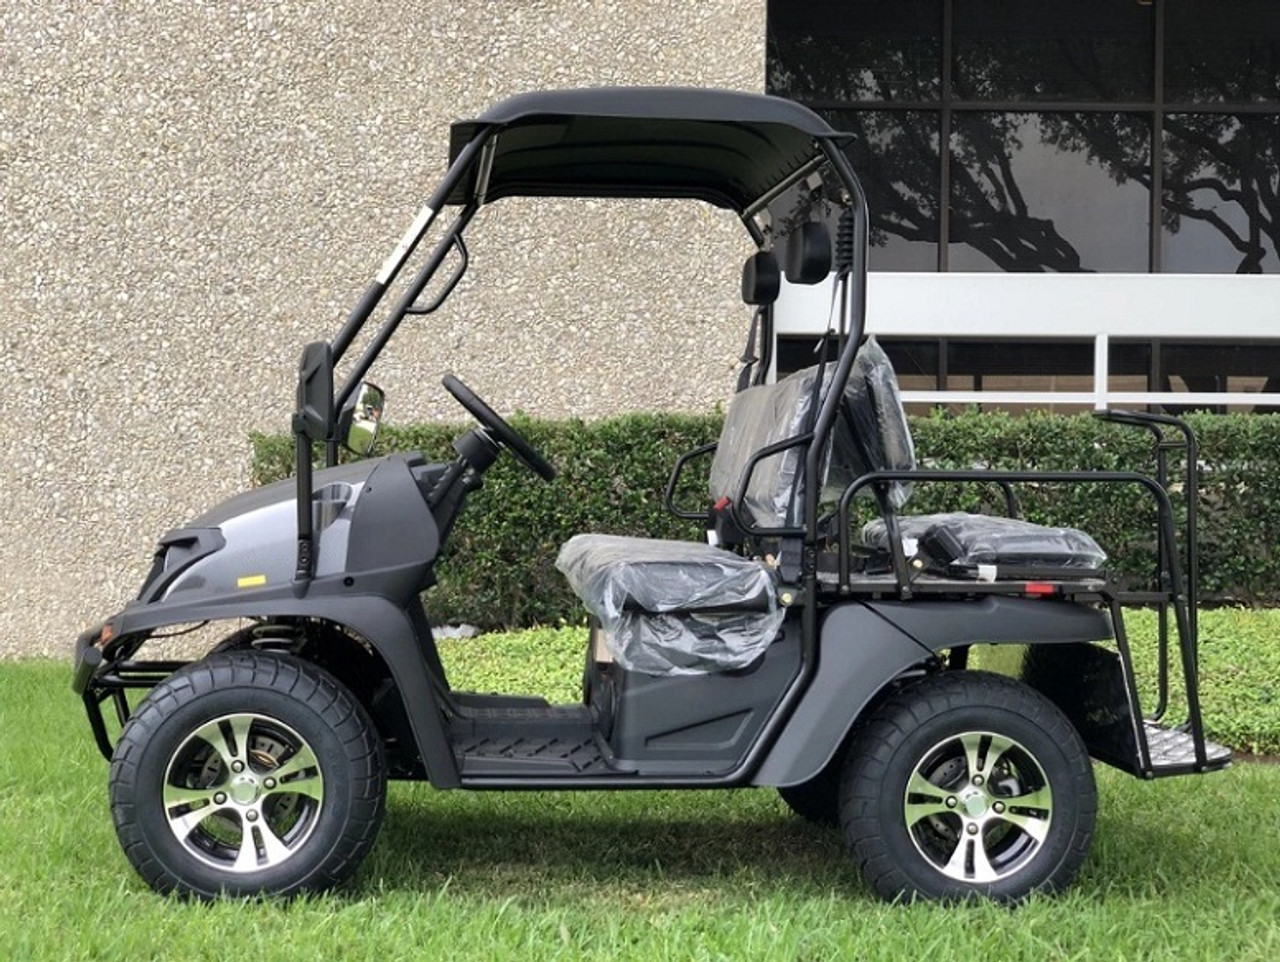 CarbonFiber - Fully Loaded Cazador OUTFITTER 200 Golf Cart 4 Seater Street Legal UTV